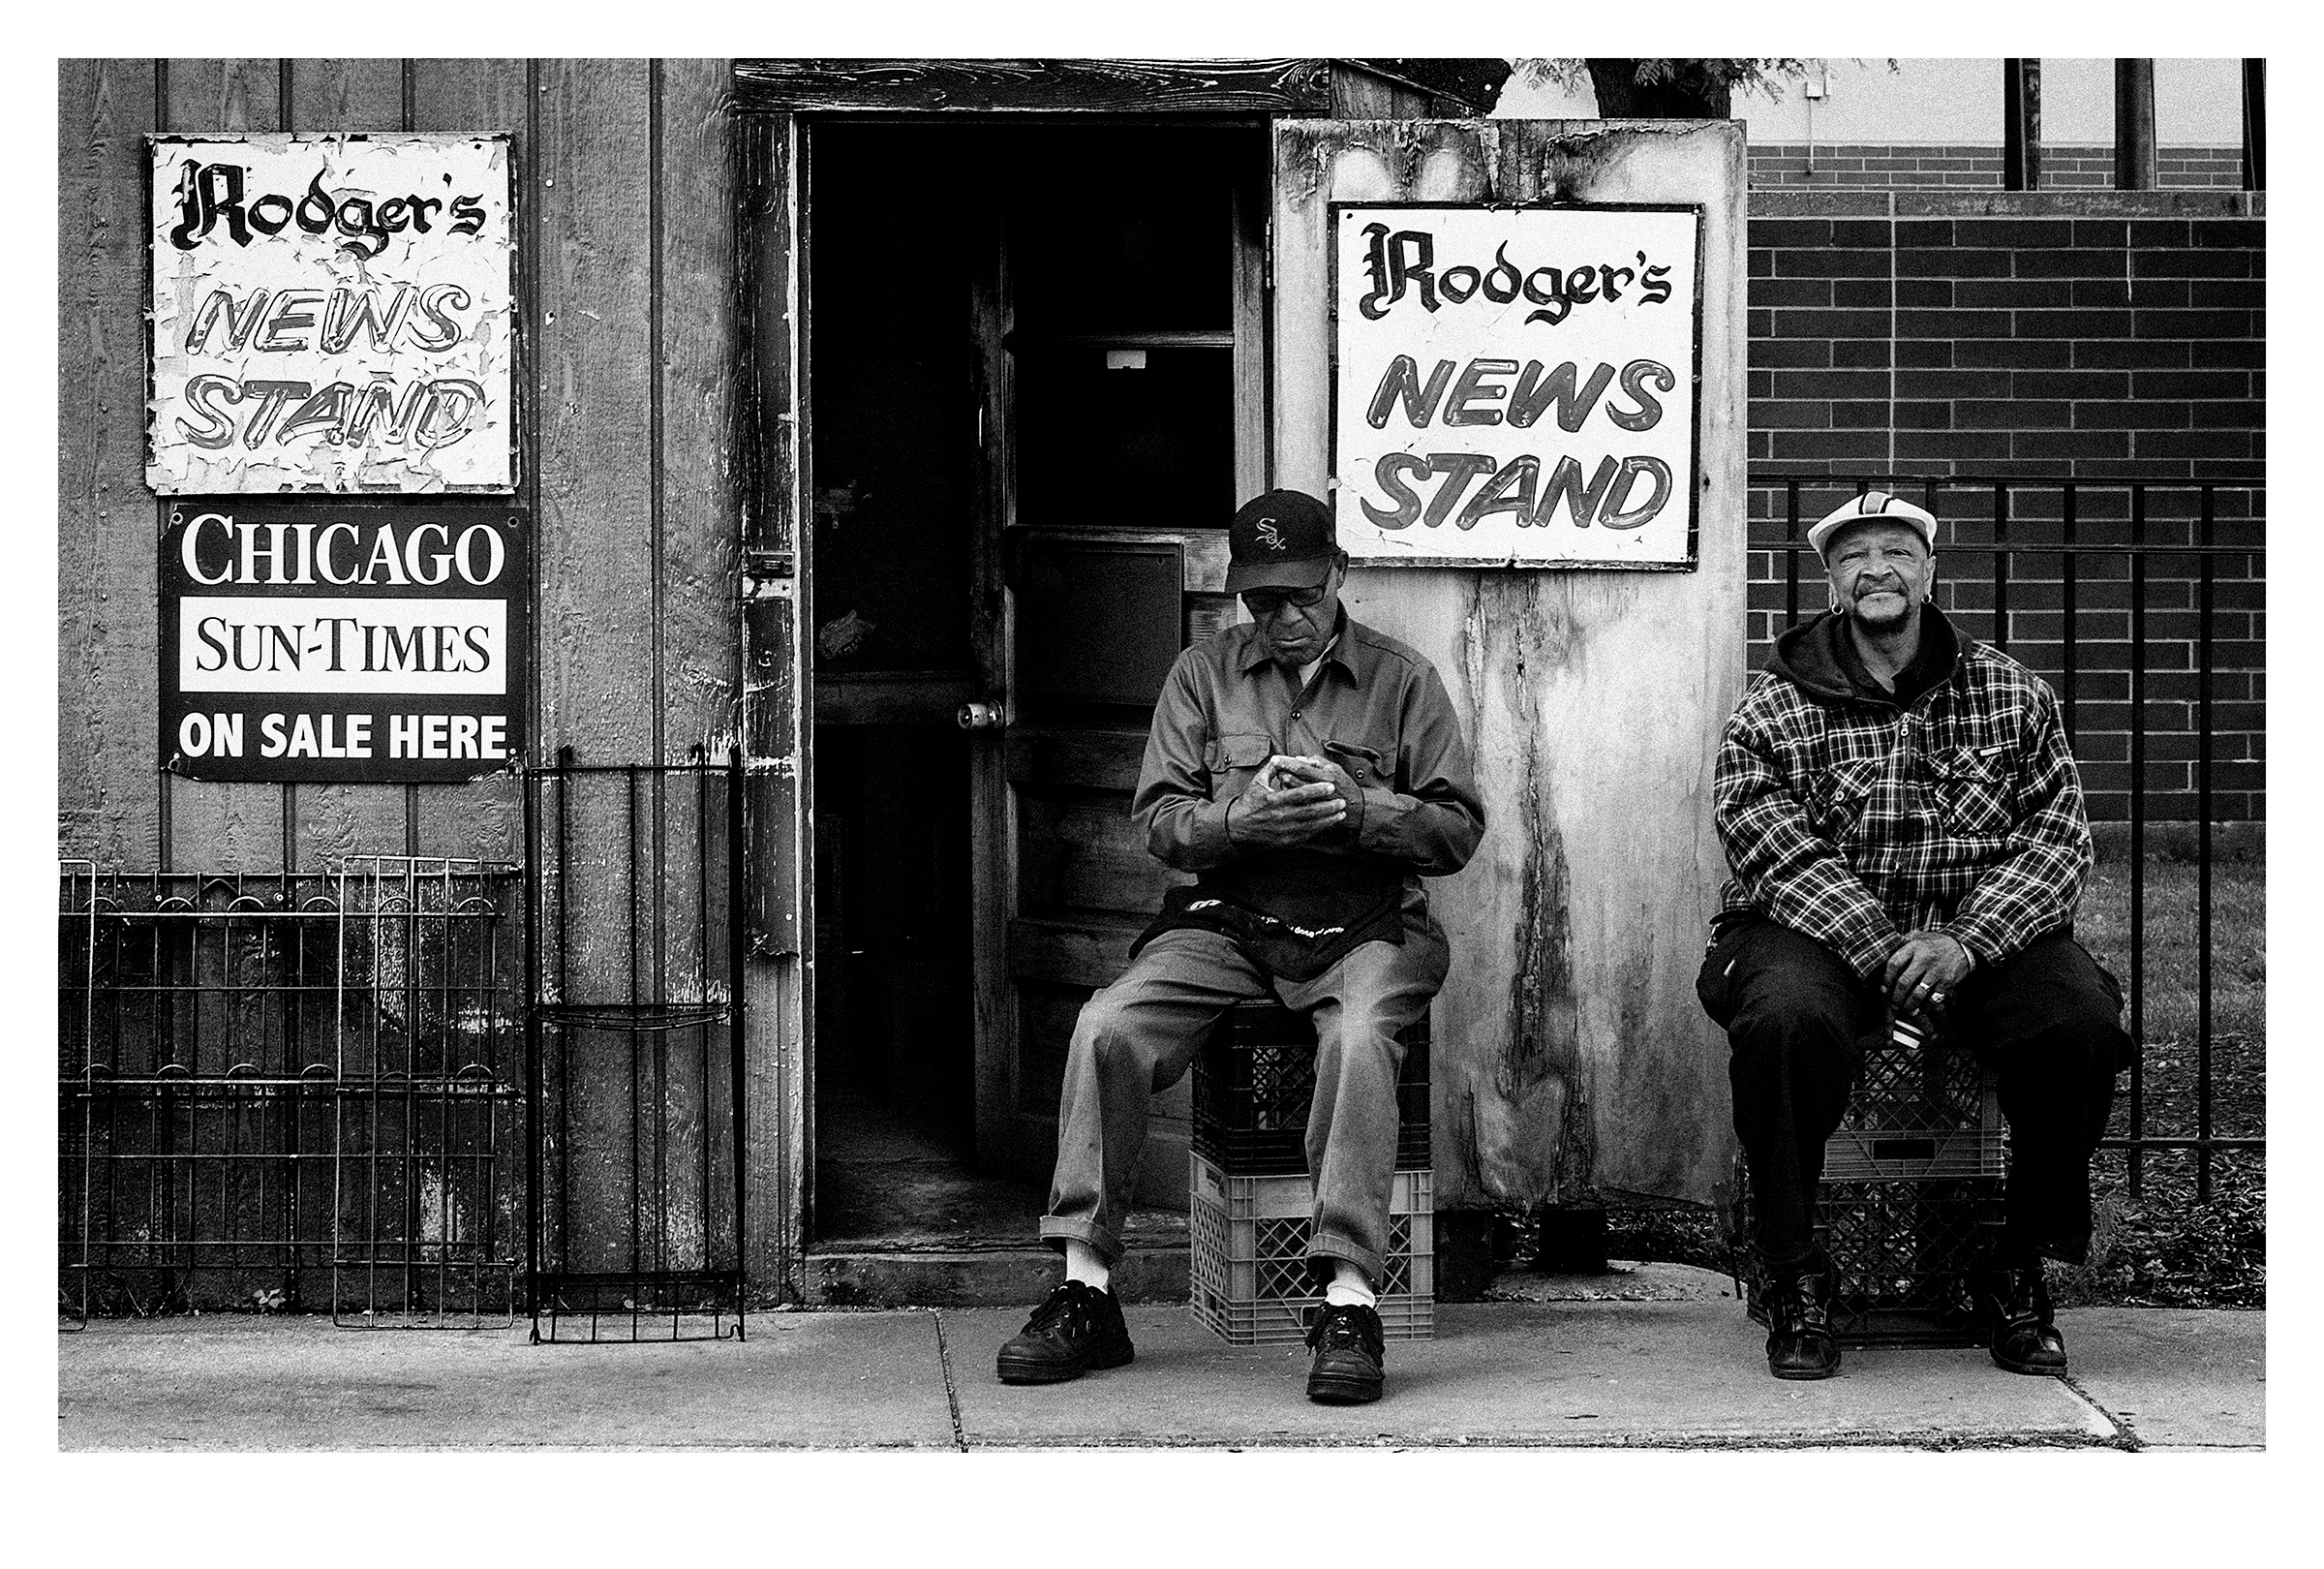 Rodger's News Stand, Chicago